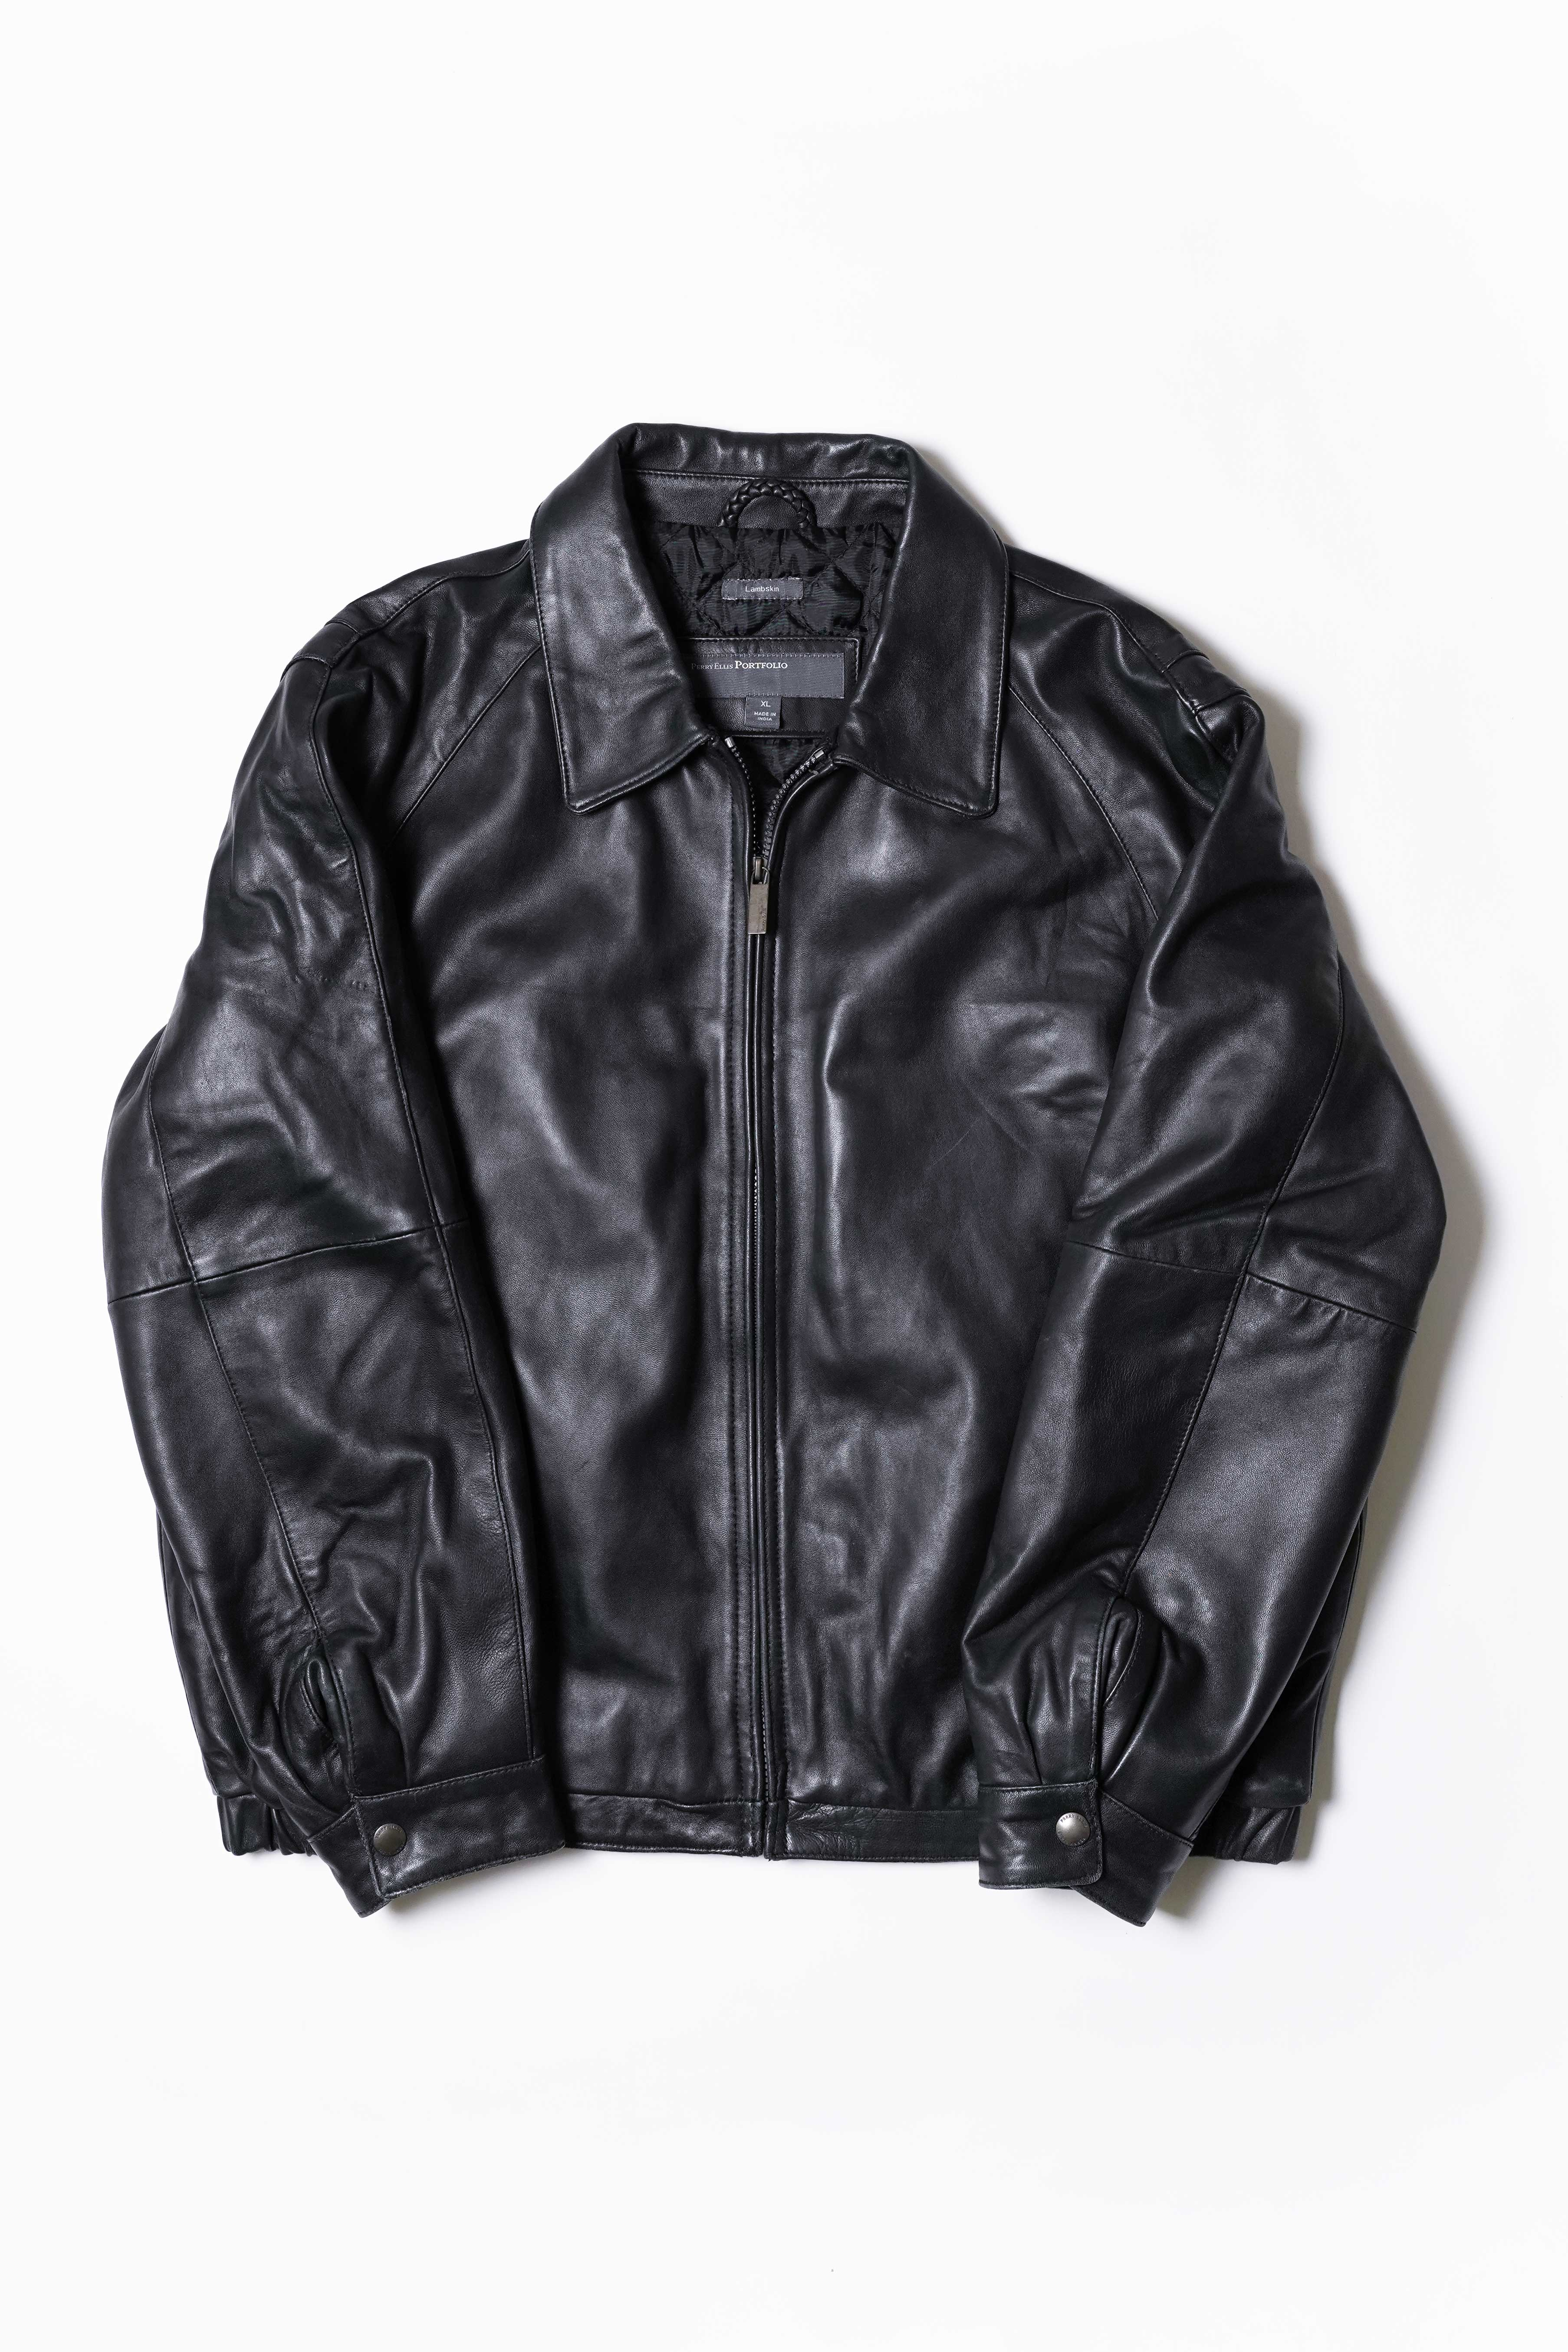 PELLY ELLIS LEATHER JACKET